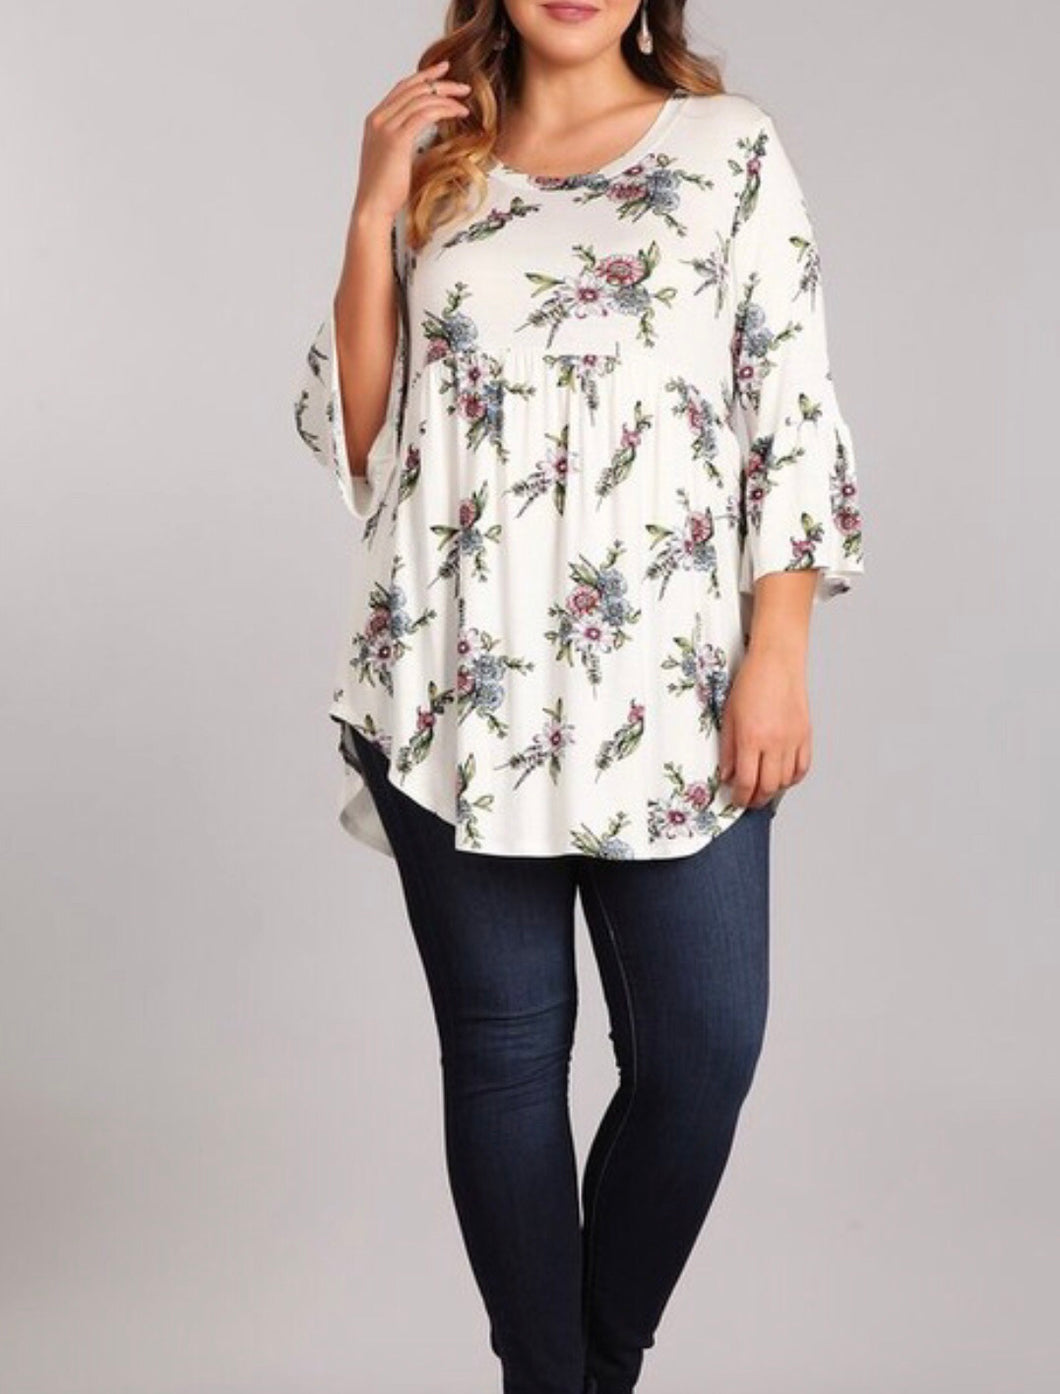 White floral babydoll top